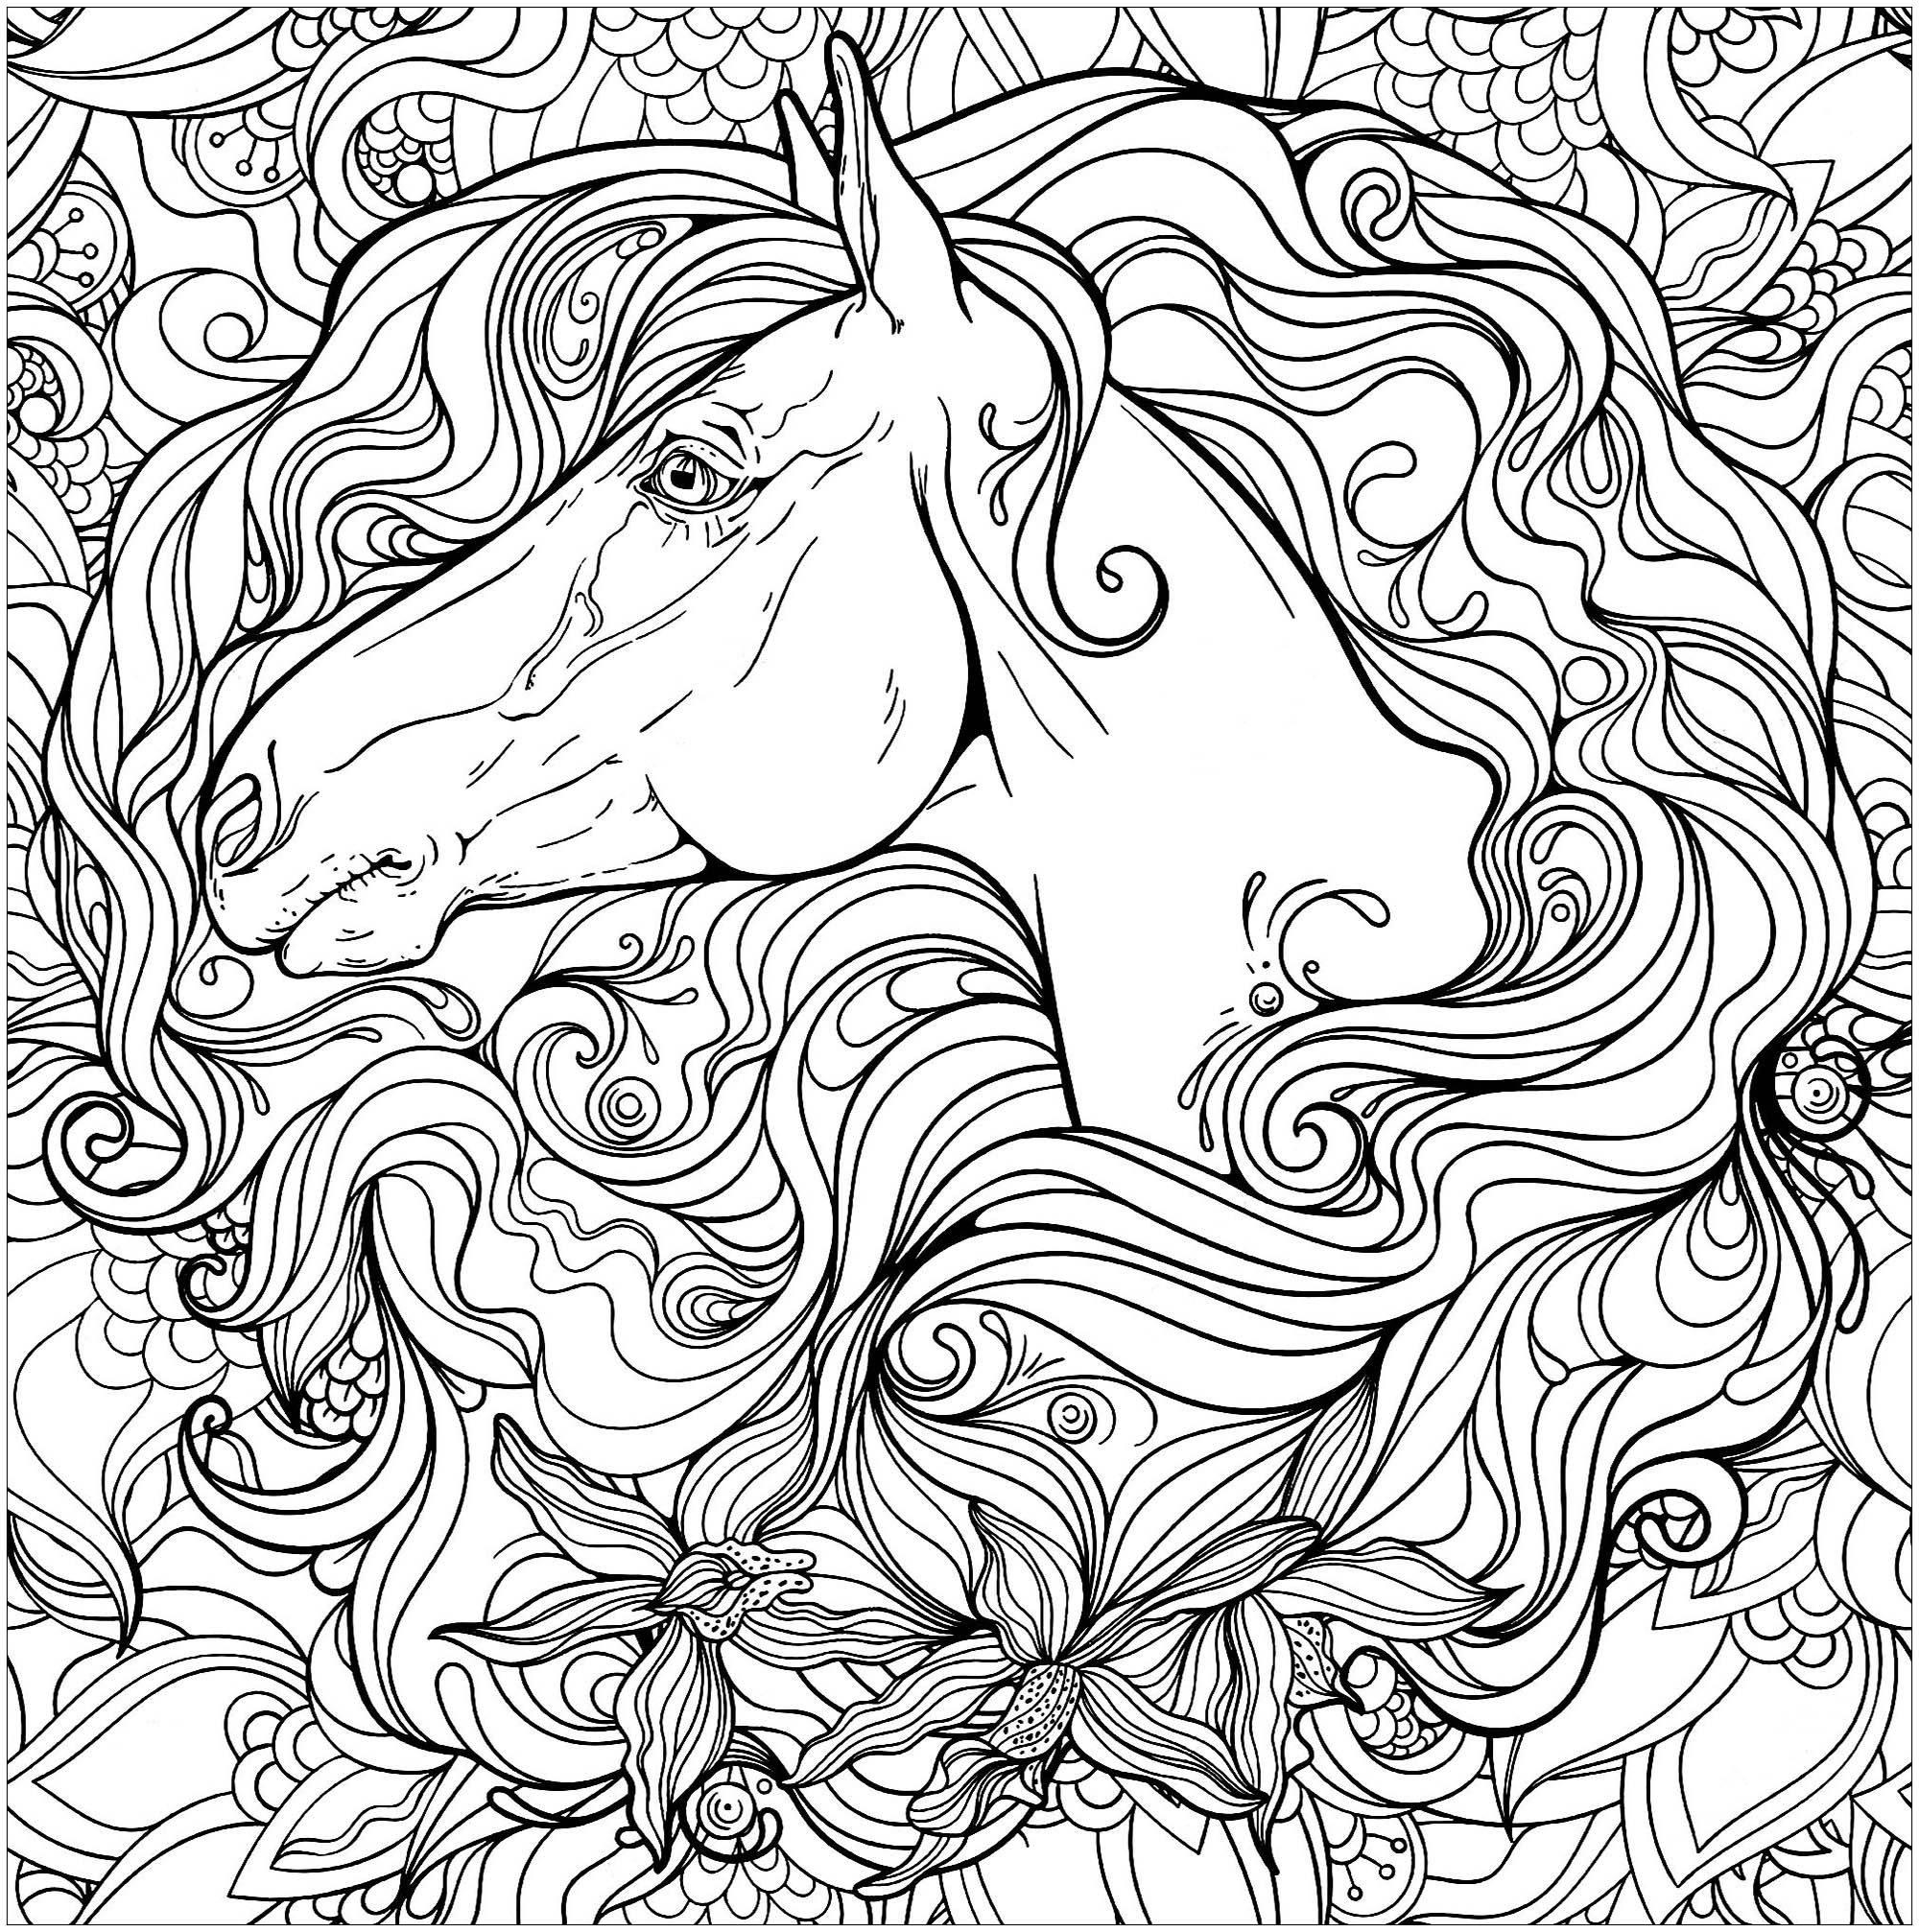 horse head coloring pages to print - Google Search (With images ... | 2014x2000